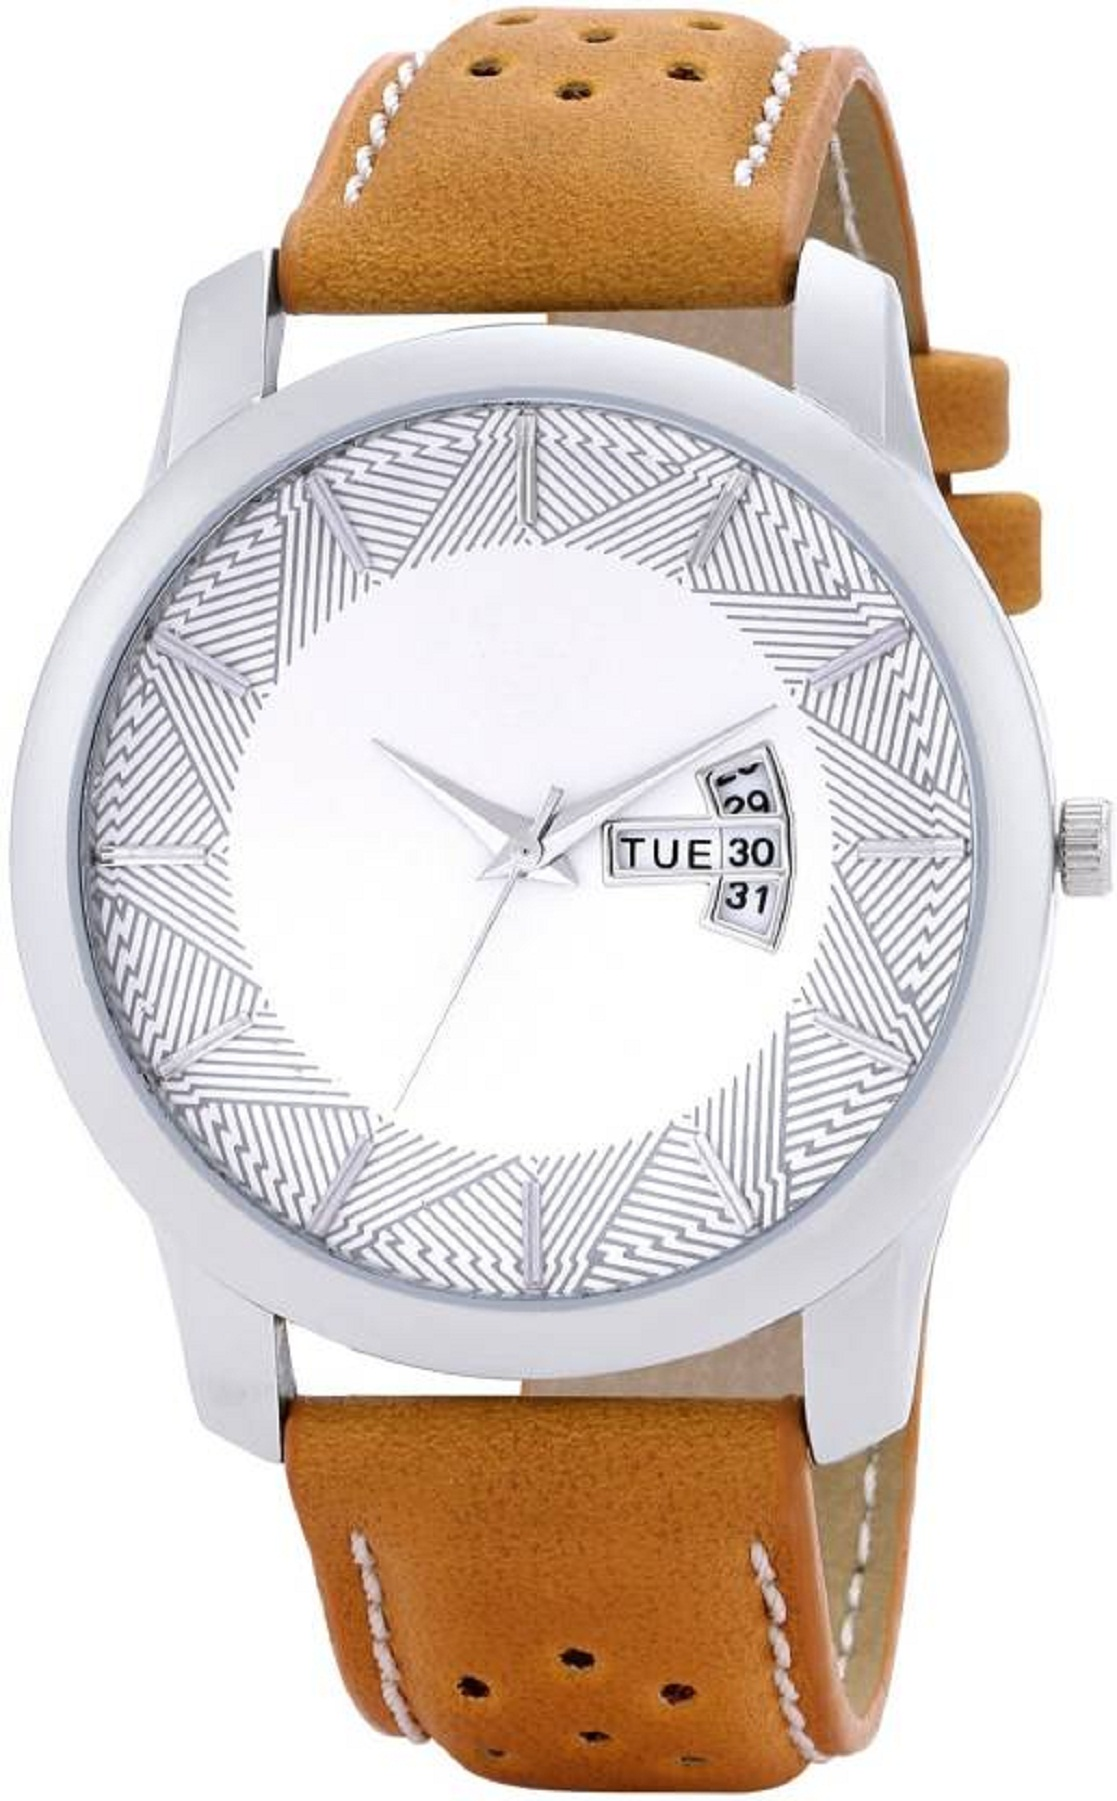 TRUE COLOURS NEW BEST LOOK ANALOG WATCH FOR MEN N BOYS WITH 6 MONTH WARRANTY